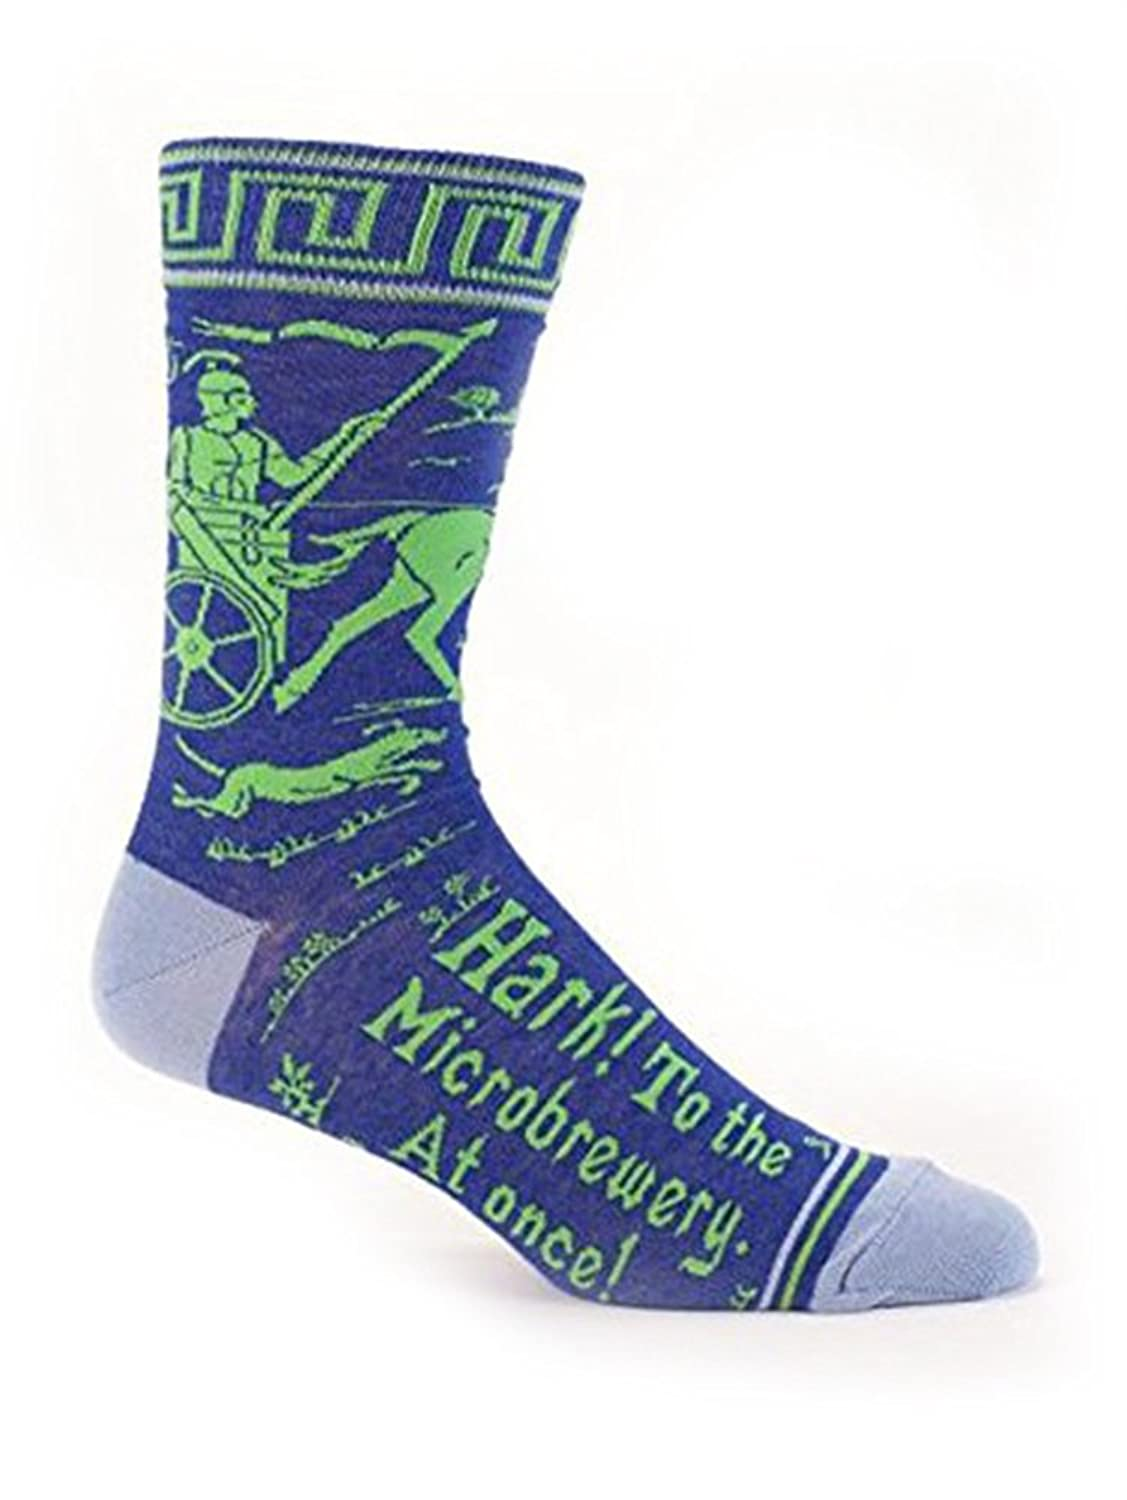 Amazon.com: Blue Q Hark! To The Microbrewery, At Once! Men's Socks: Clothing